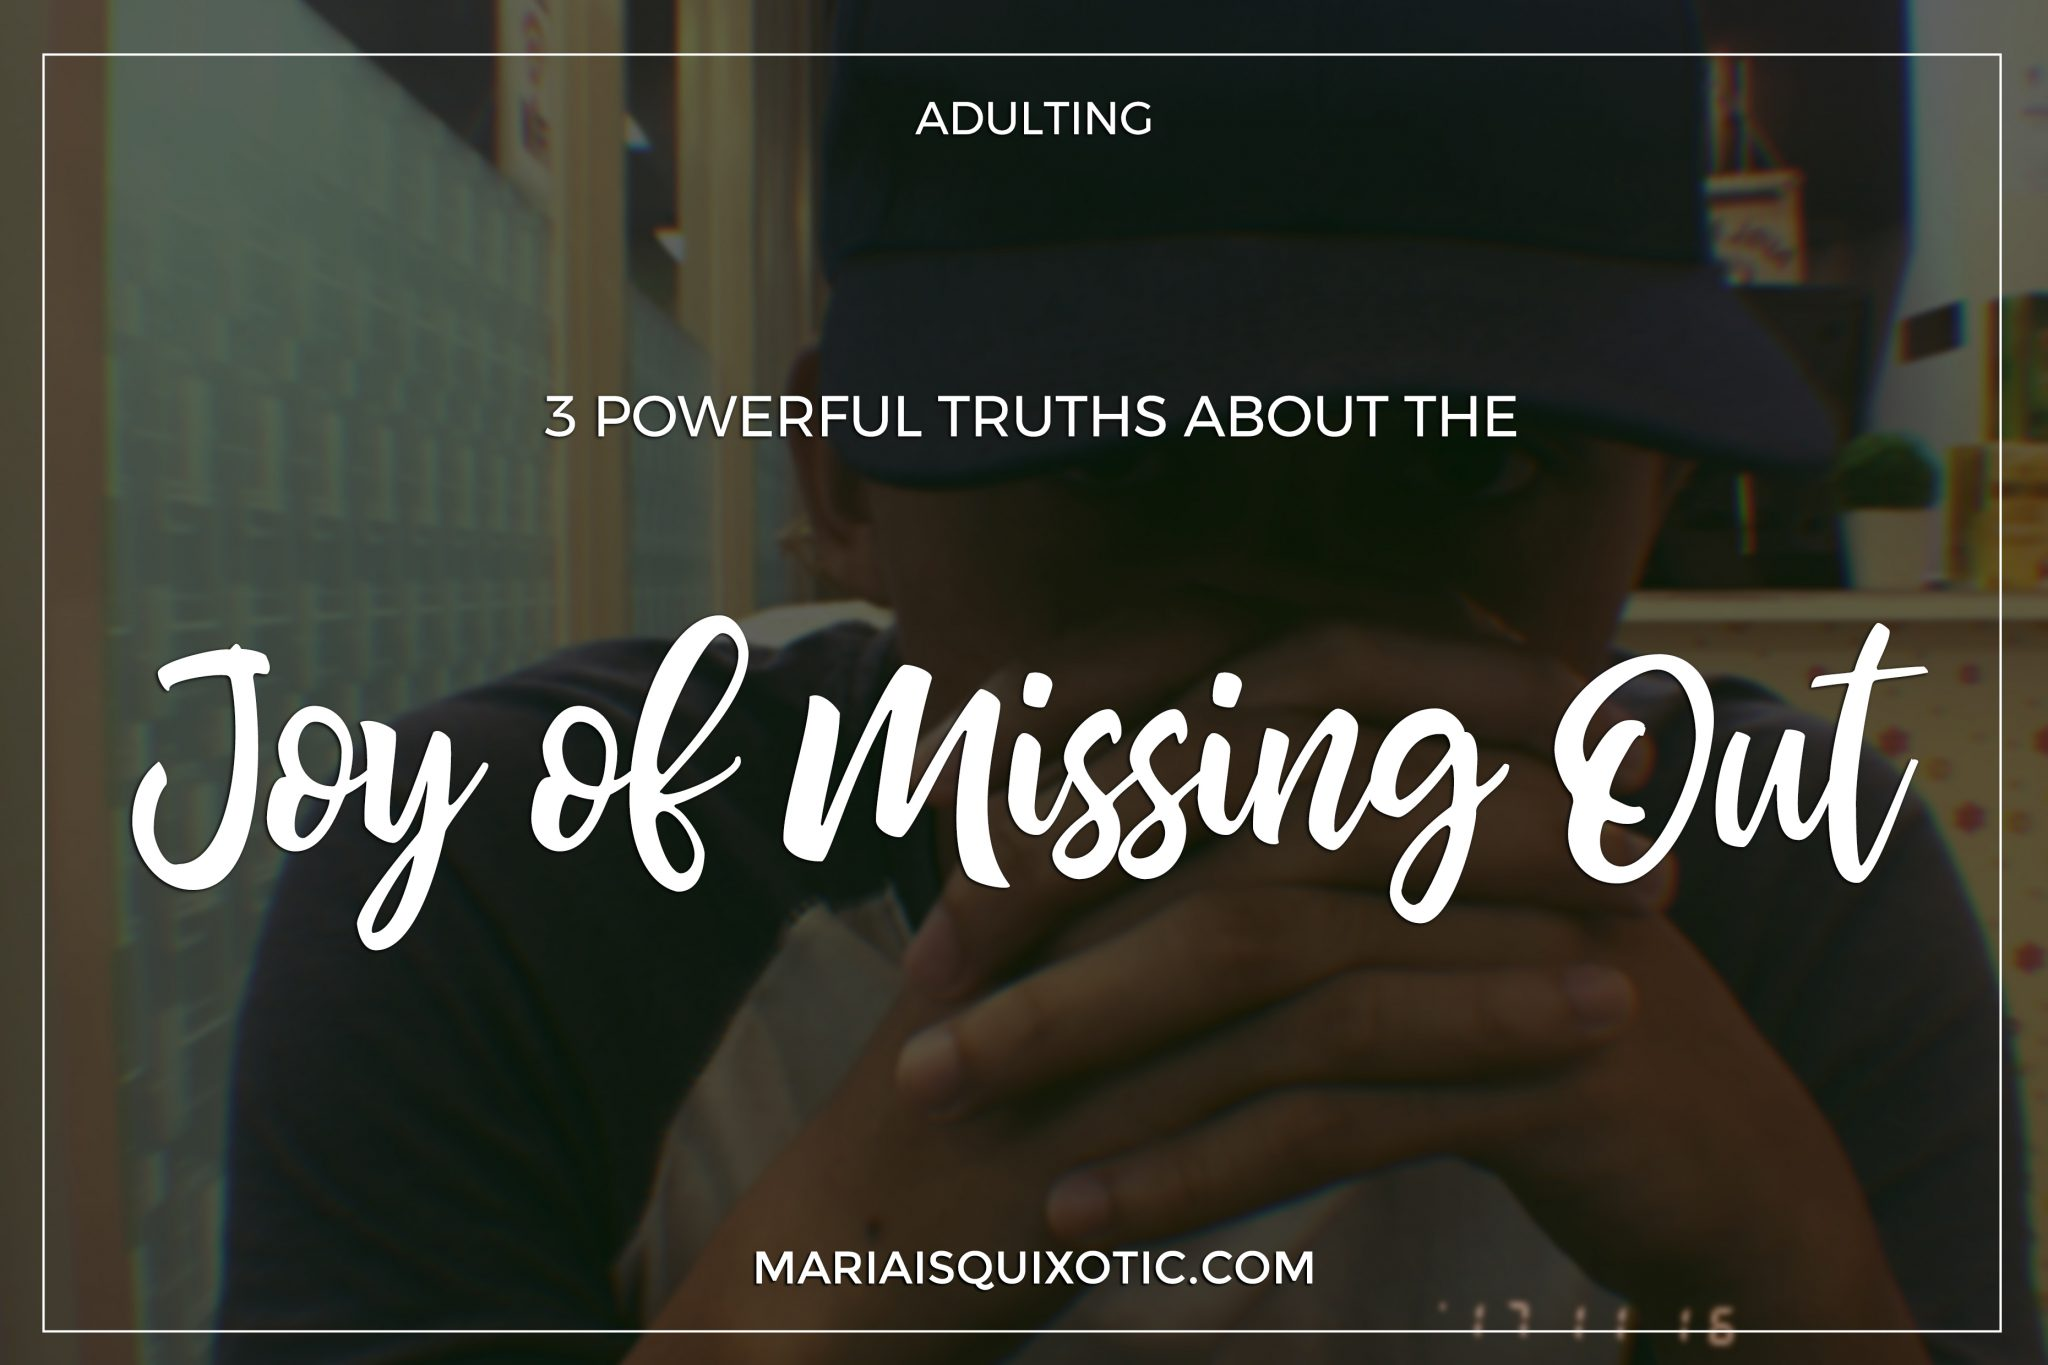 3 Powerful Truths About the Joy of Missing Out